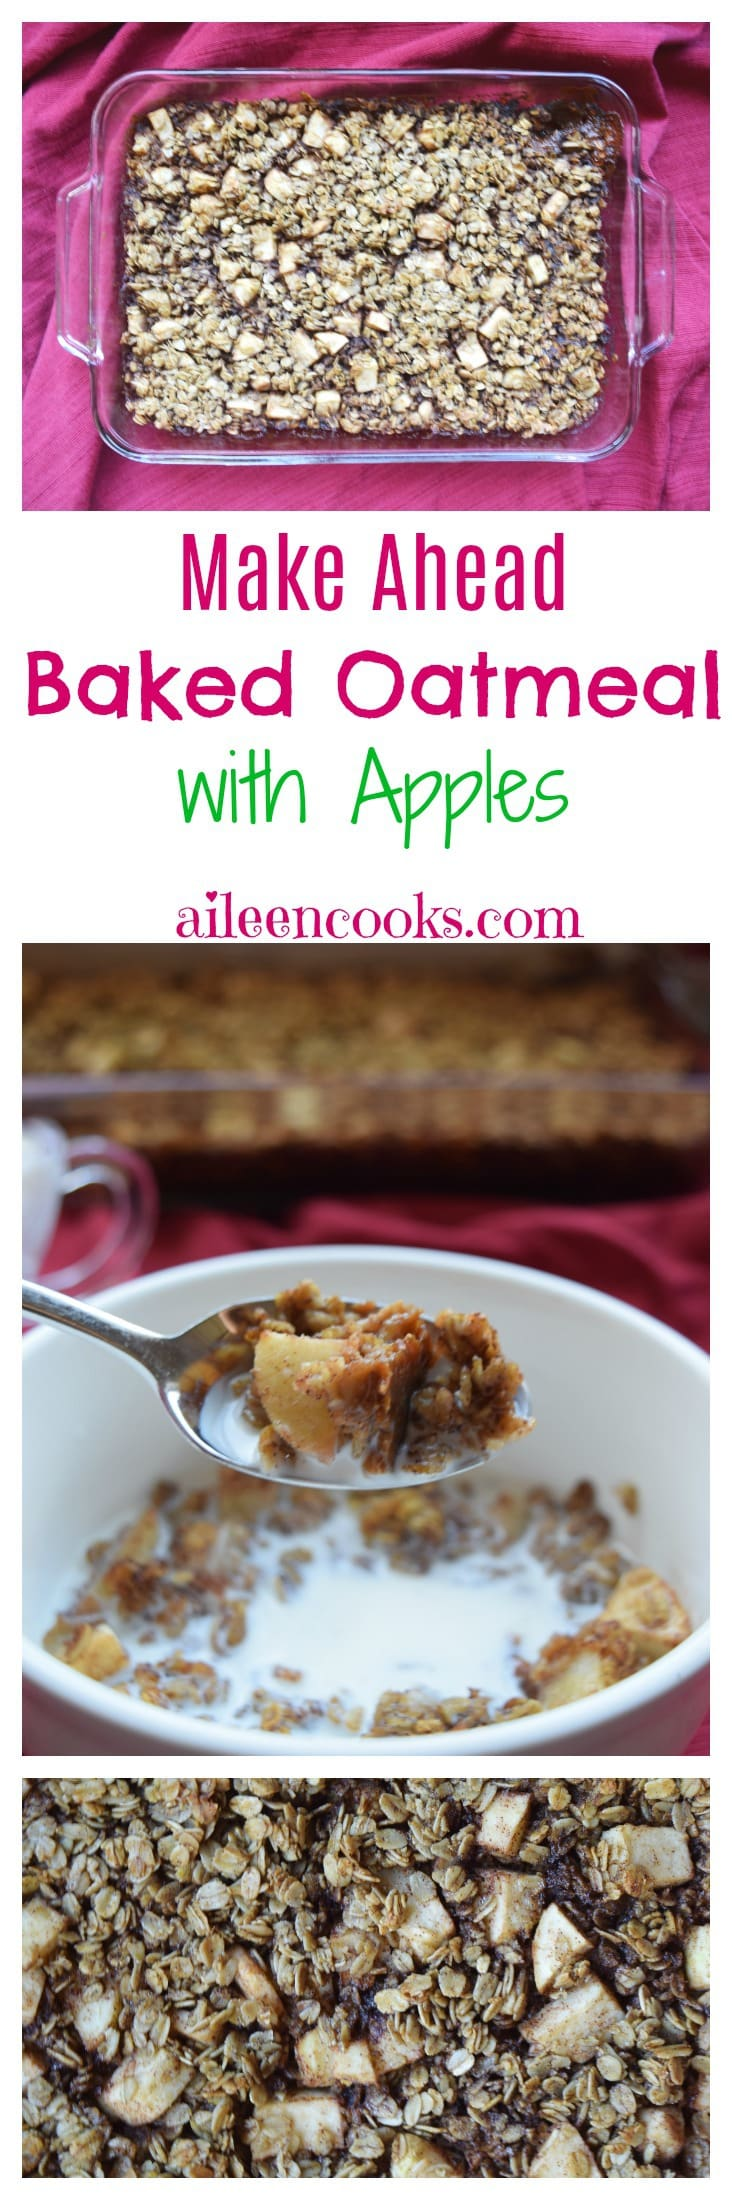 Make ahead baked oatmeal with apples. This recipe is freezer friendly and reheats nicely all week. The perfect recipe for a busy back to school season.